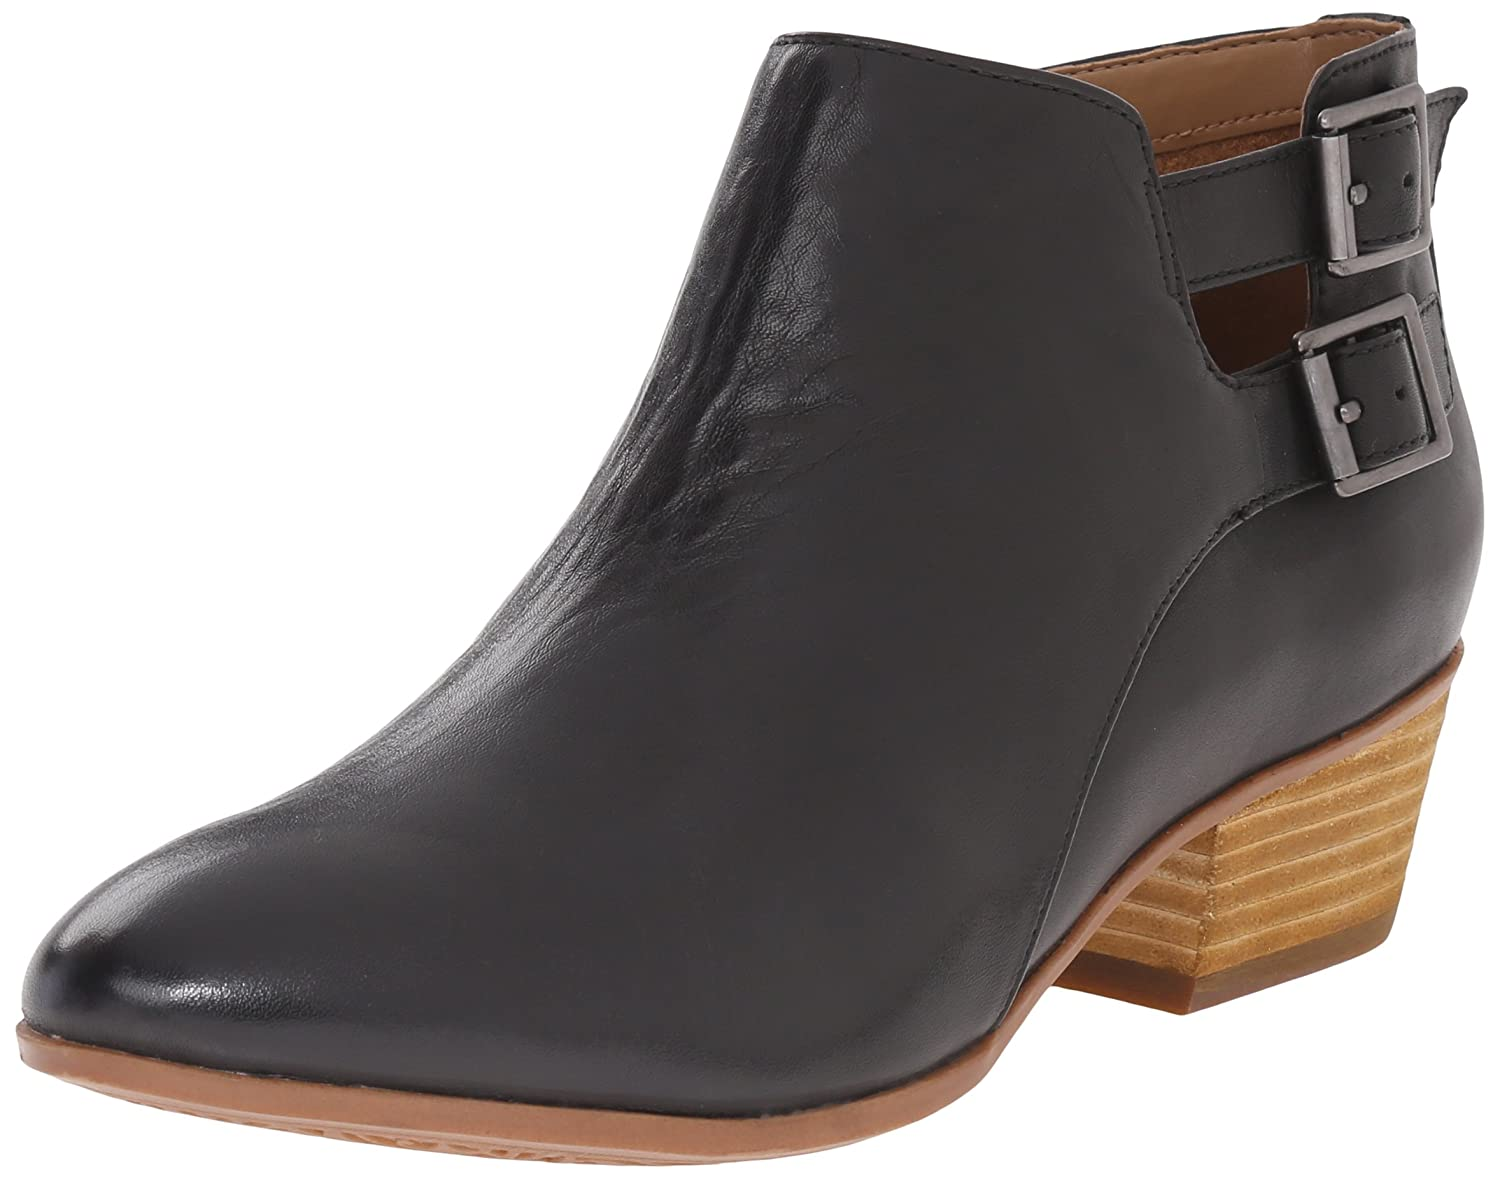 CLARKS Women's Spye Astro Boot B00Z83Y1U4 7 B(M) US|Black Leather